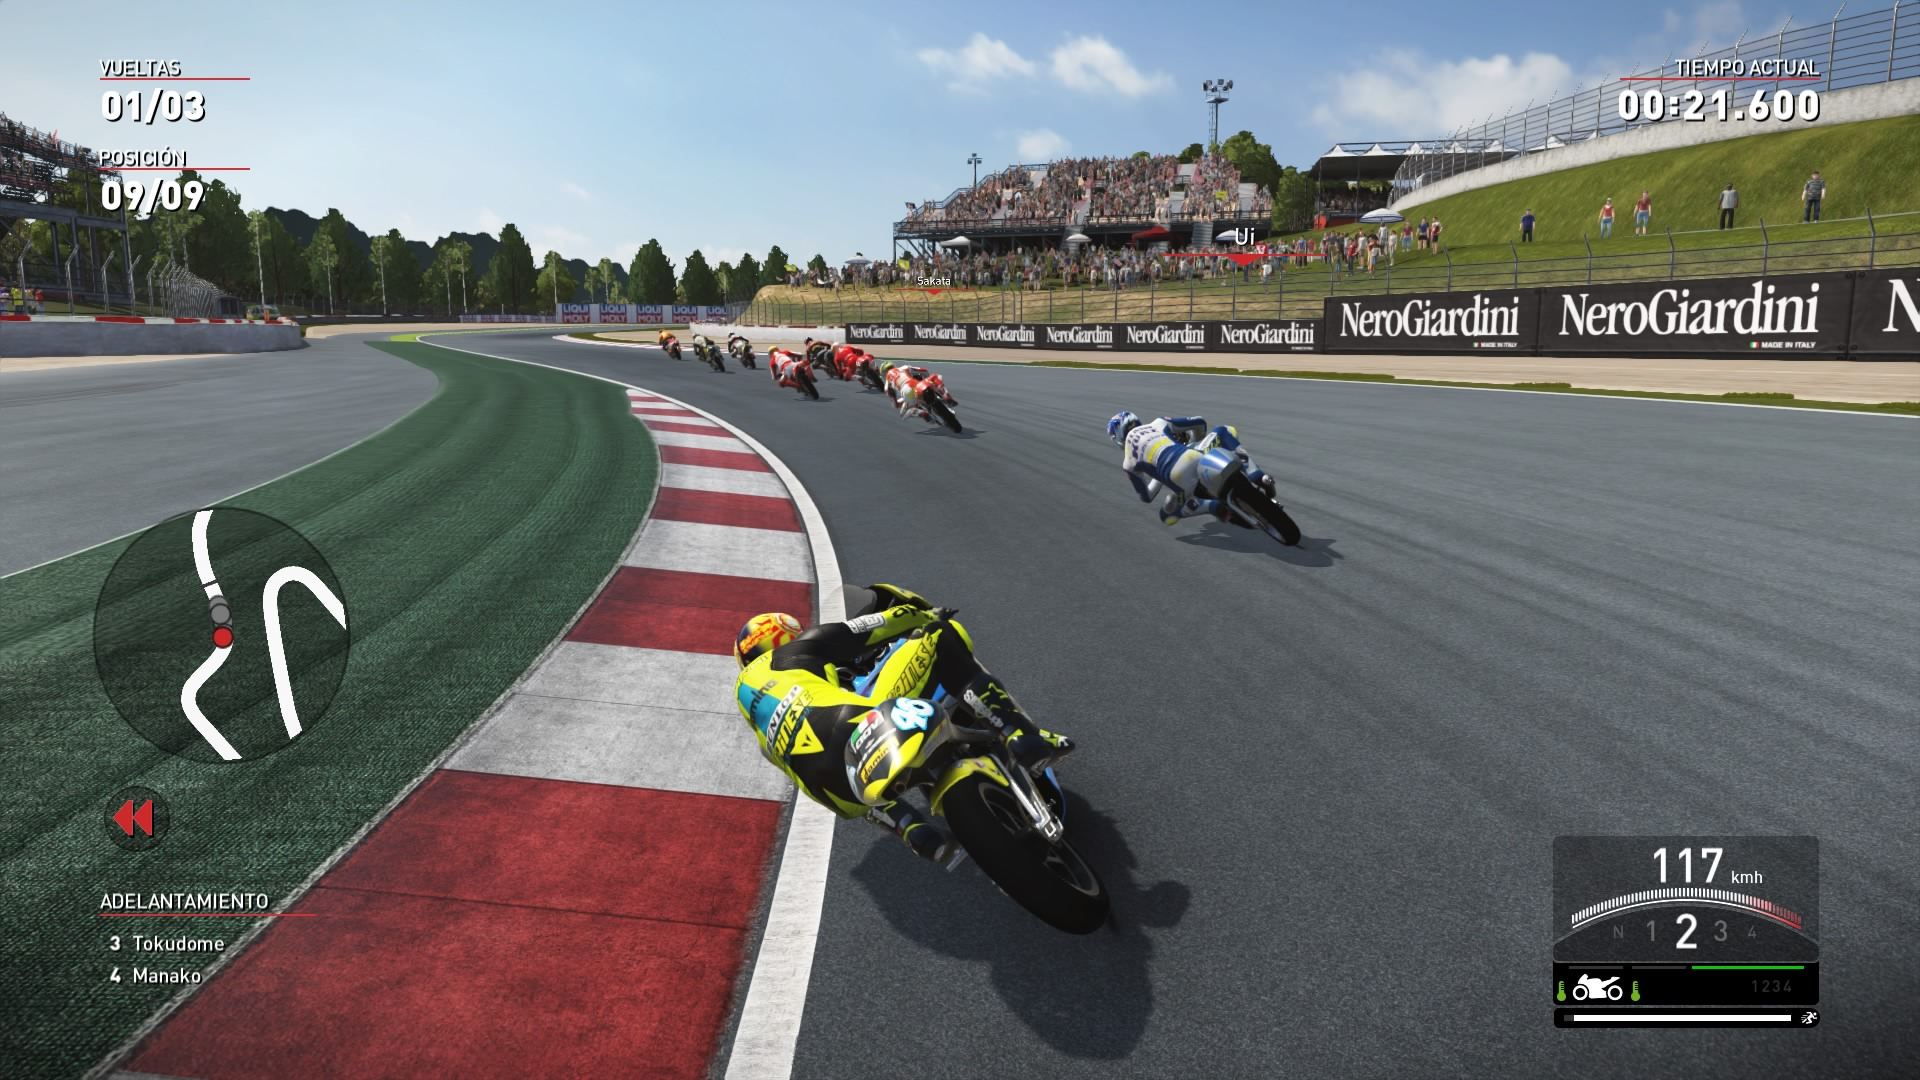 Deli Frost Motogp 06 Full Game Free Pc Download Play